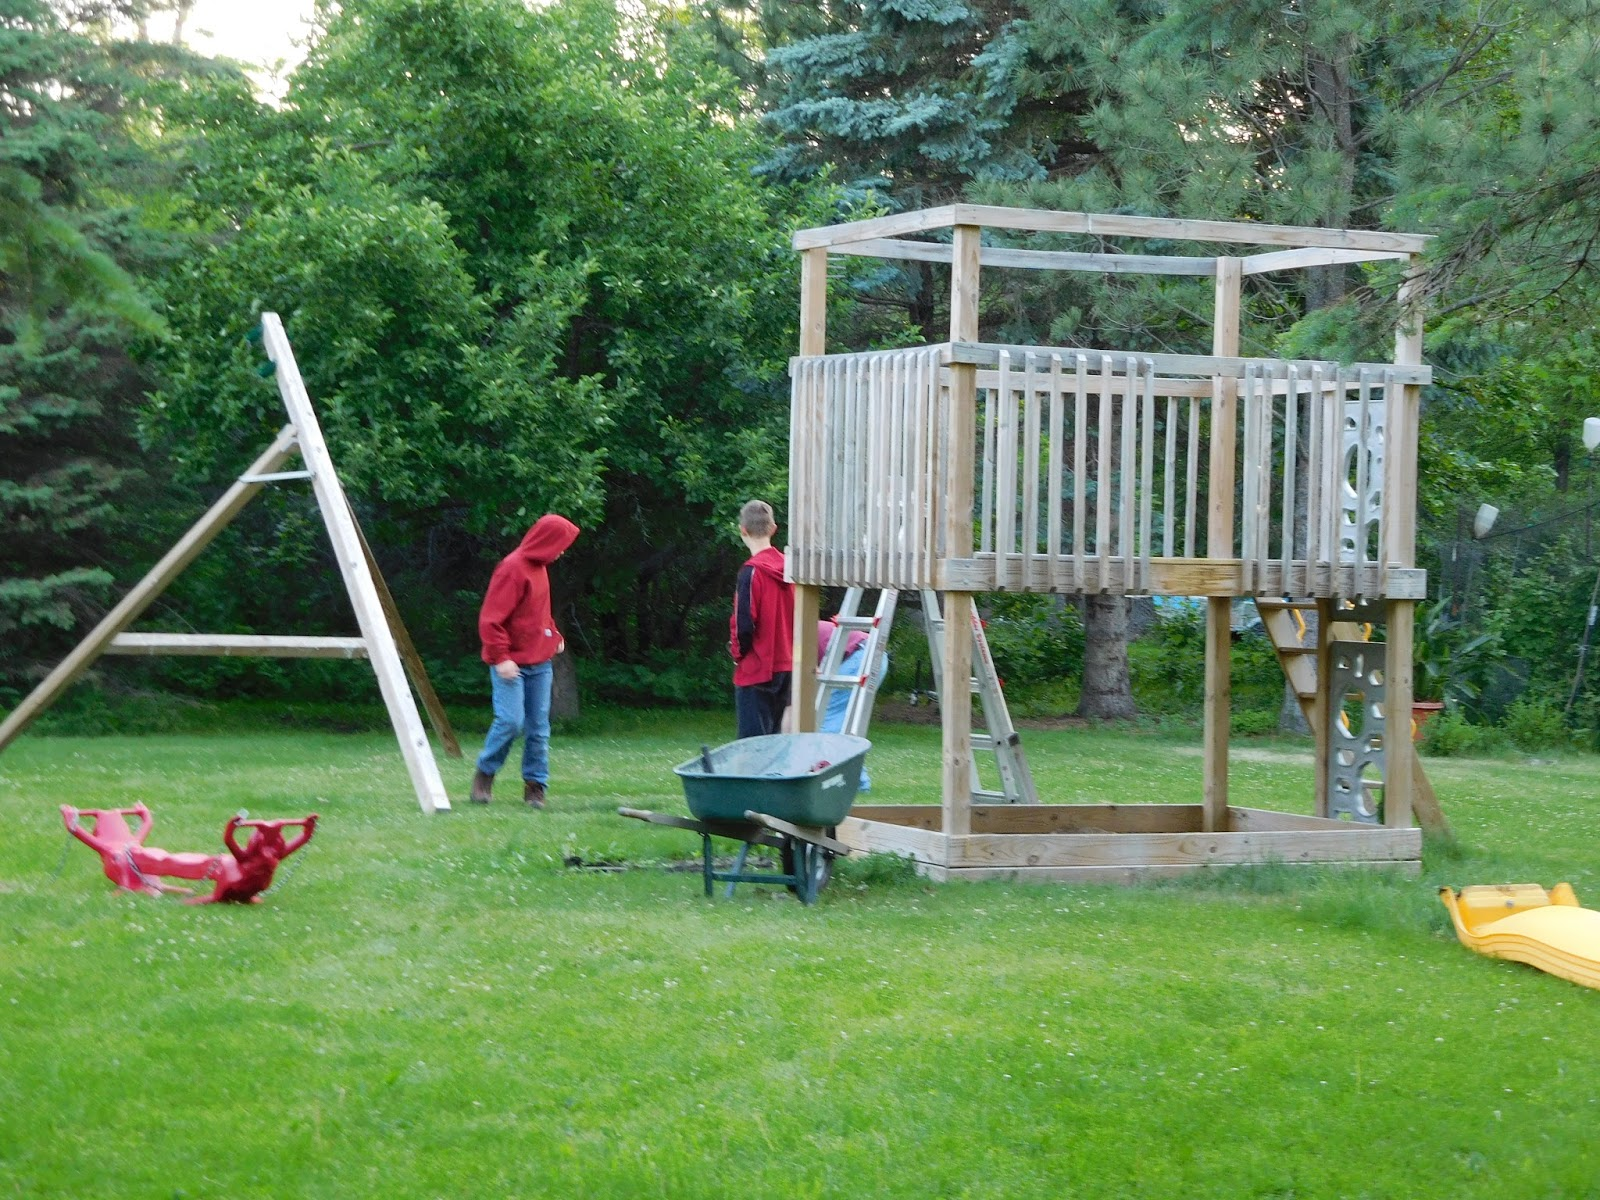 Treasures for Heaven: Moving a Swing Set